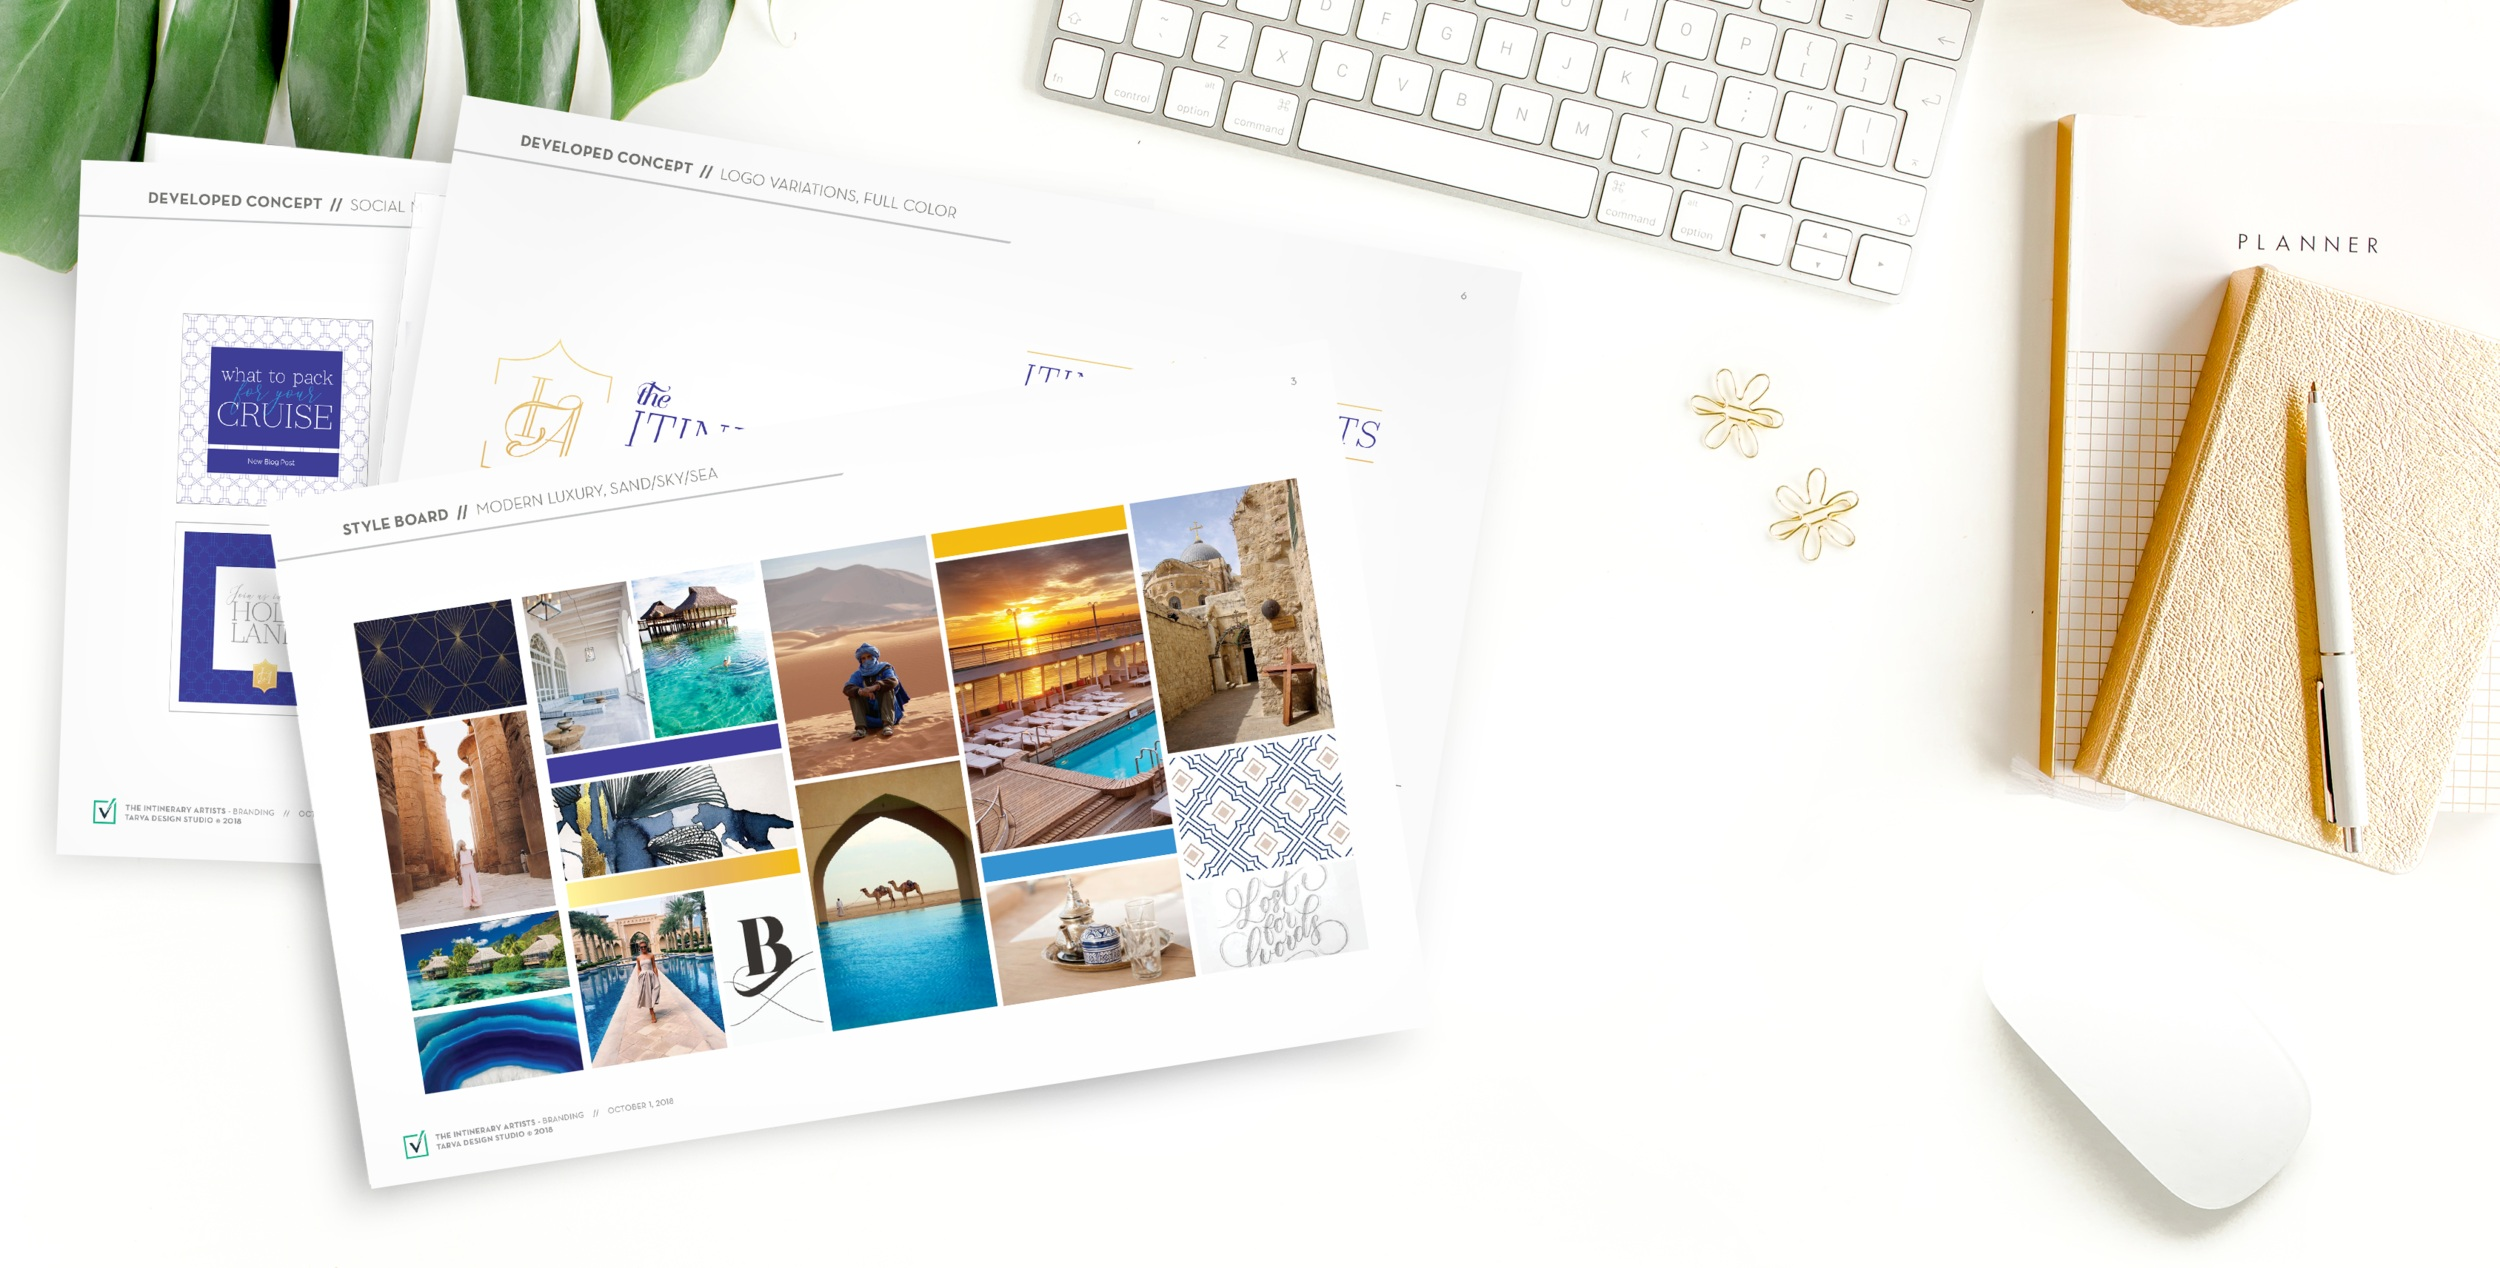 Luxury, hospitality, and warmth - This mood board shows the inspiration for The Itinerary Artist's logo and brand—a modern blending of sand, sun, water, and light to communicate the luxury, hospitality and warmth of their services.